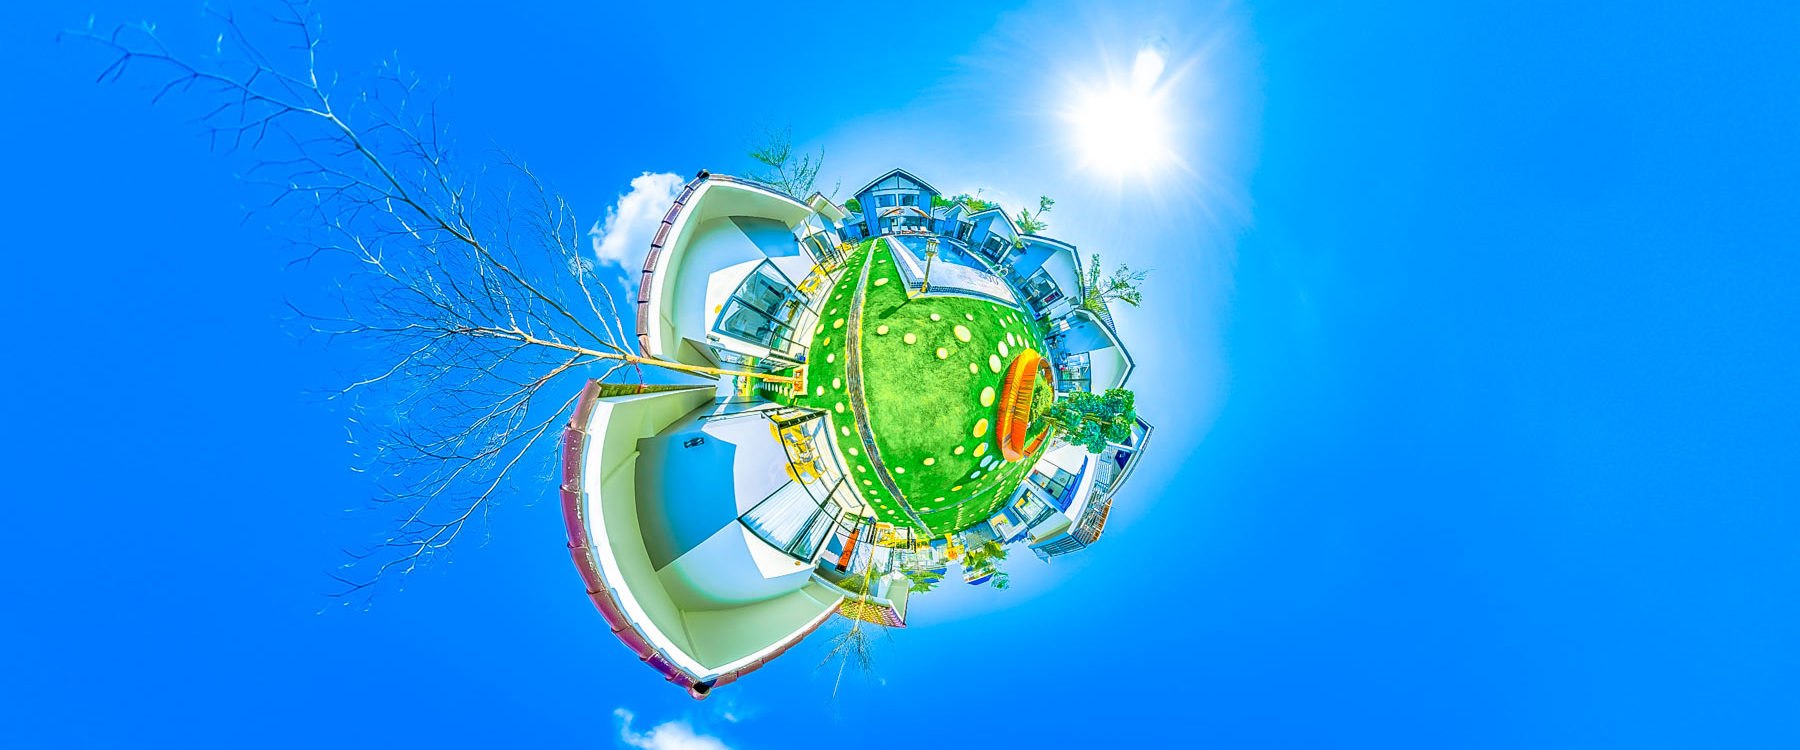 Hotel overview with the rooms to rent and the swimming pool garden area in Sandy Clay Bungalows, Otres Village | Spherical 360 Photography.